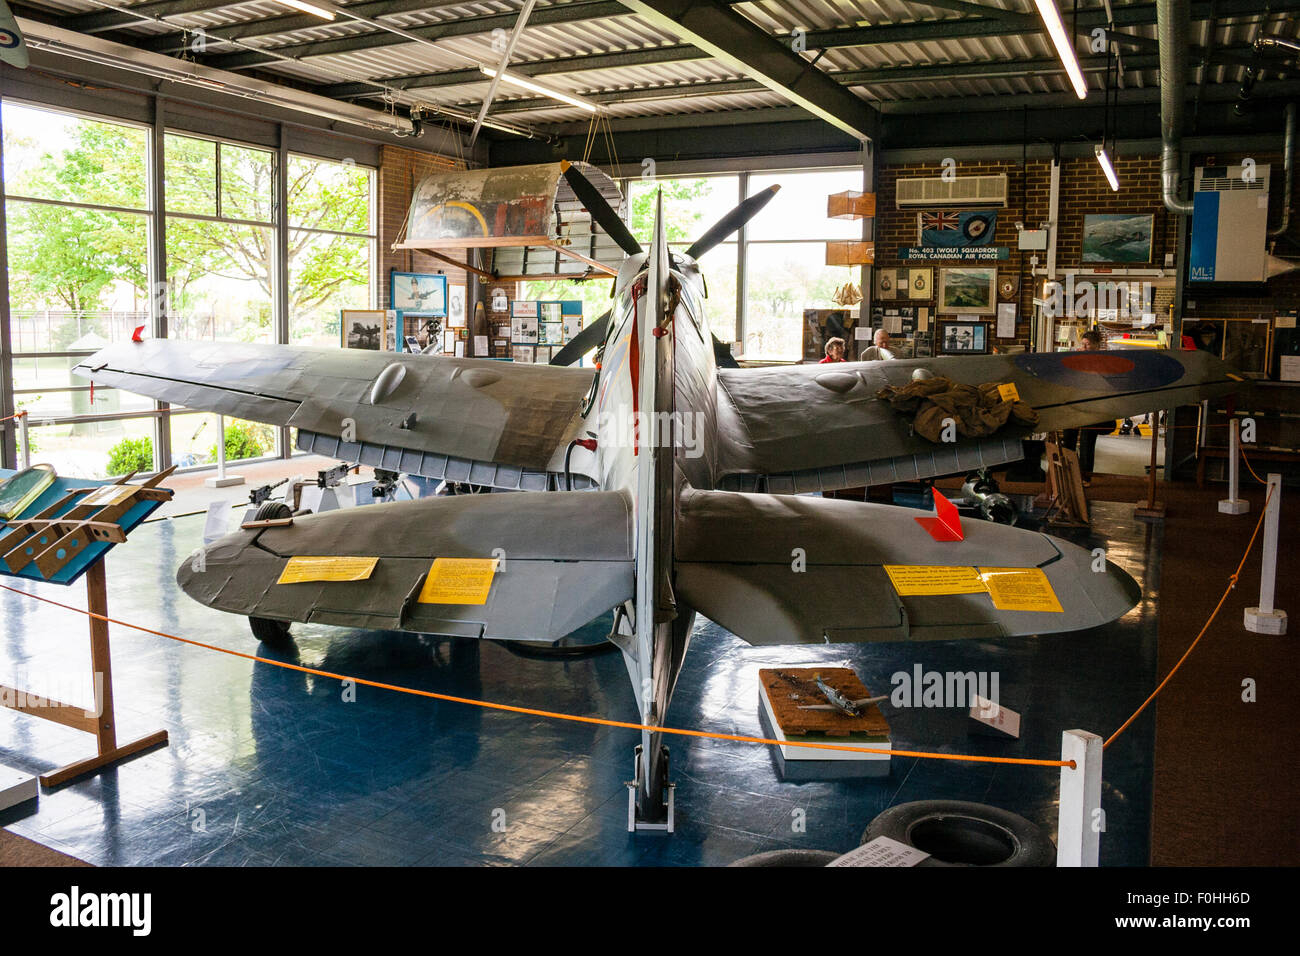 RAF Manston Spitfire museum, Spitfire XVI, view from tailplane and interior of museum - Stock Image